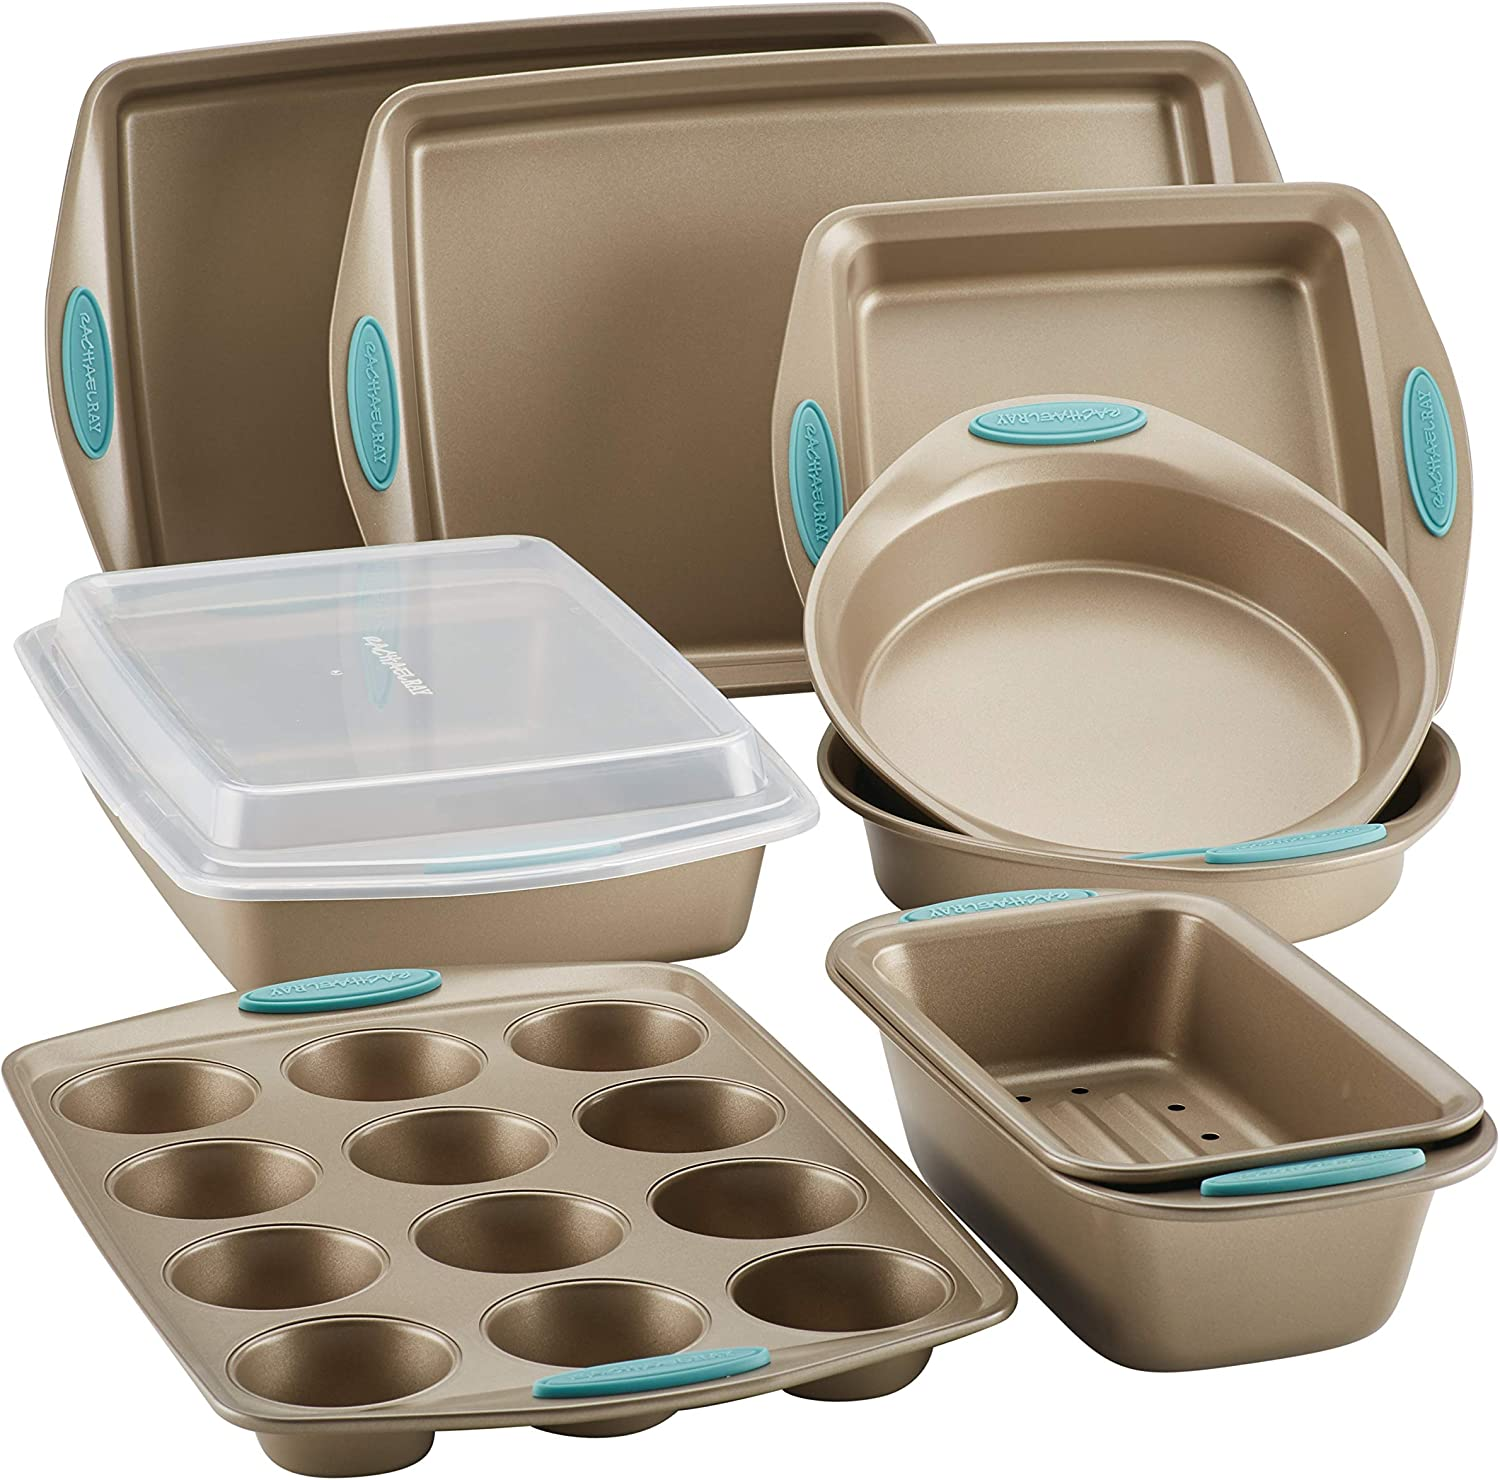 Nonstick Bakeware Set with Grips, 10 Piece